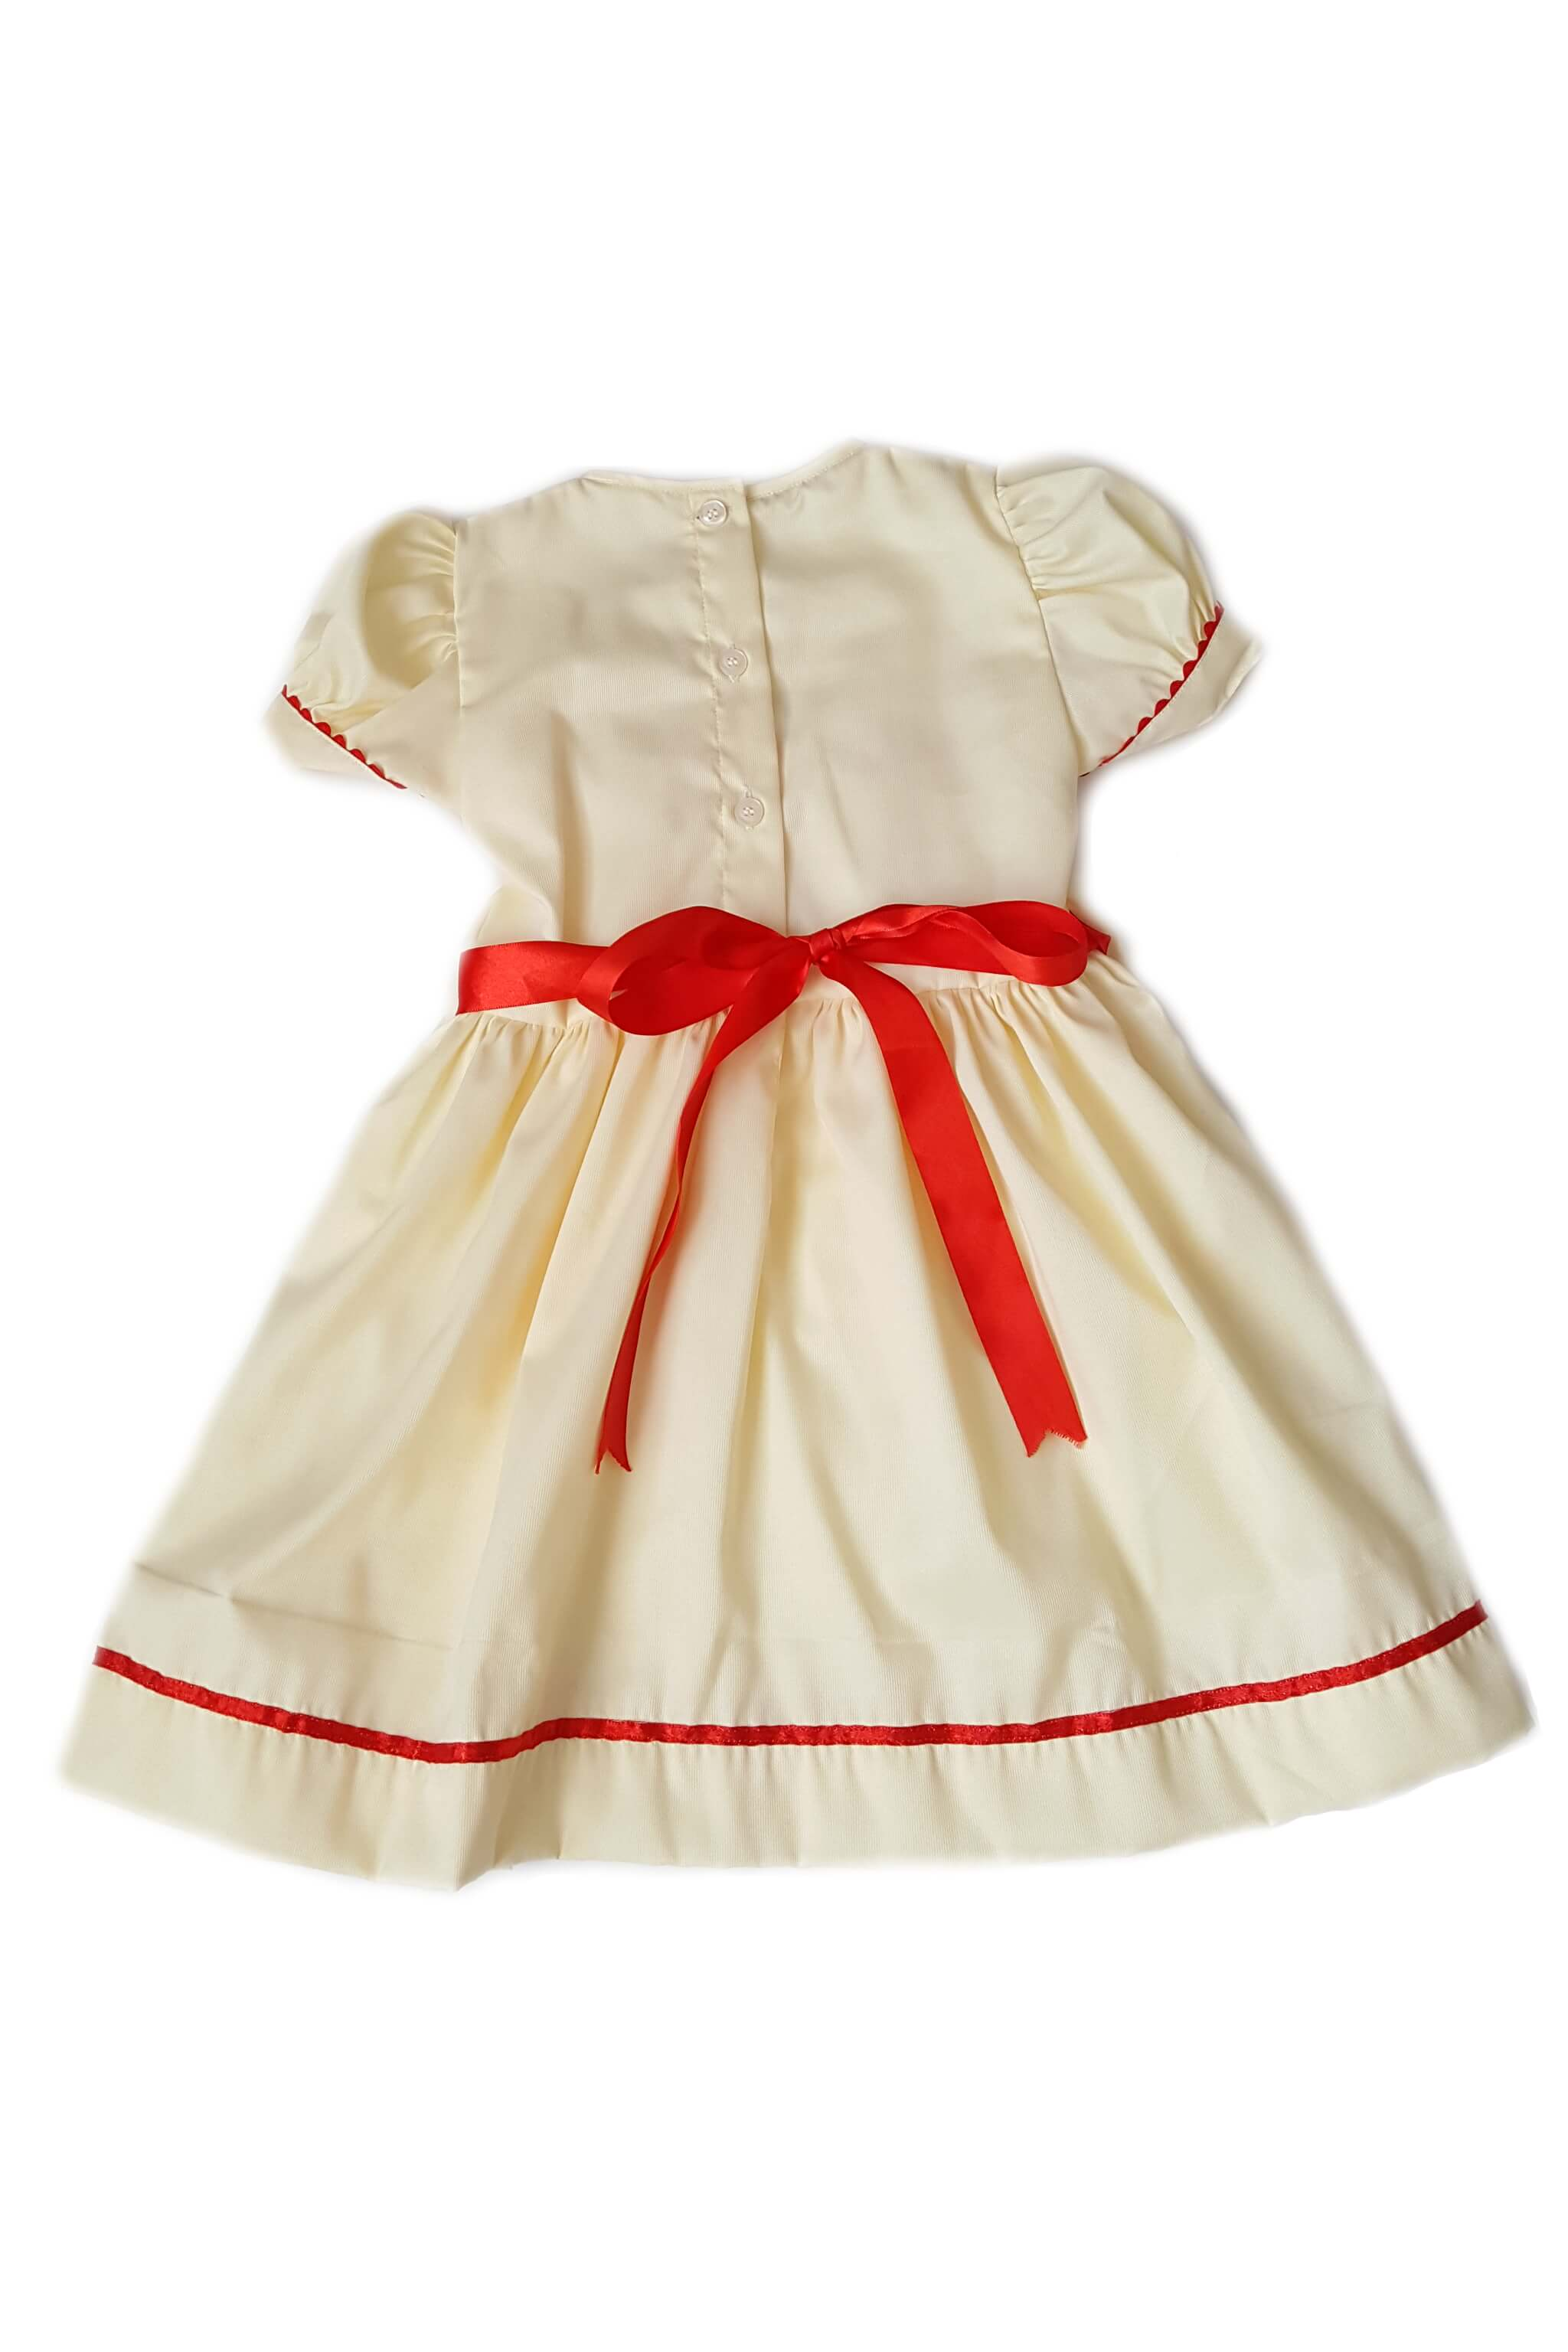 Back of buttercream yellow dress with white placket features red hand-embroidered rosettes and red hand-smocked bodice with red satin trim and sash for girls